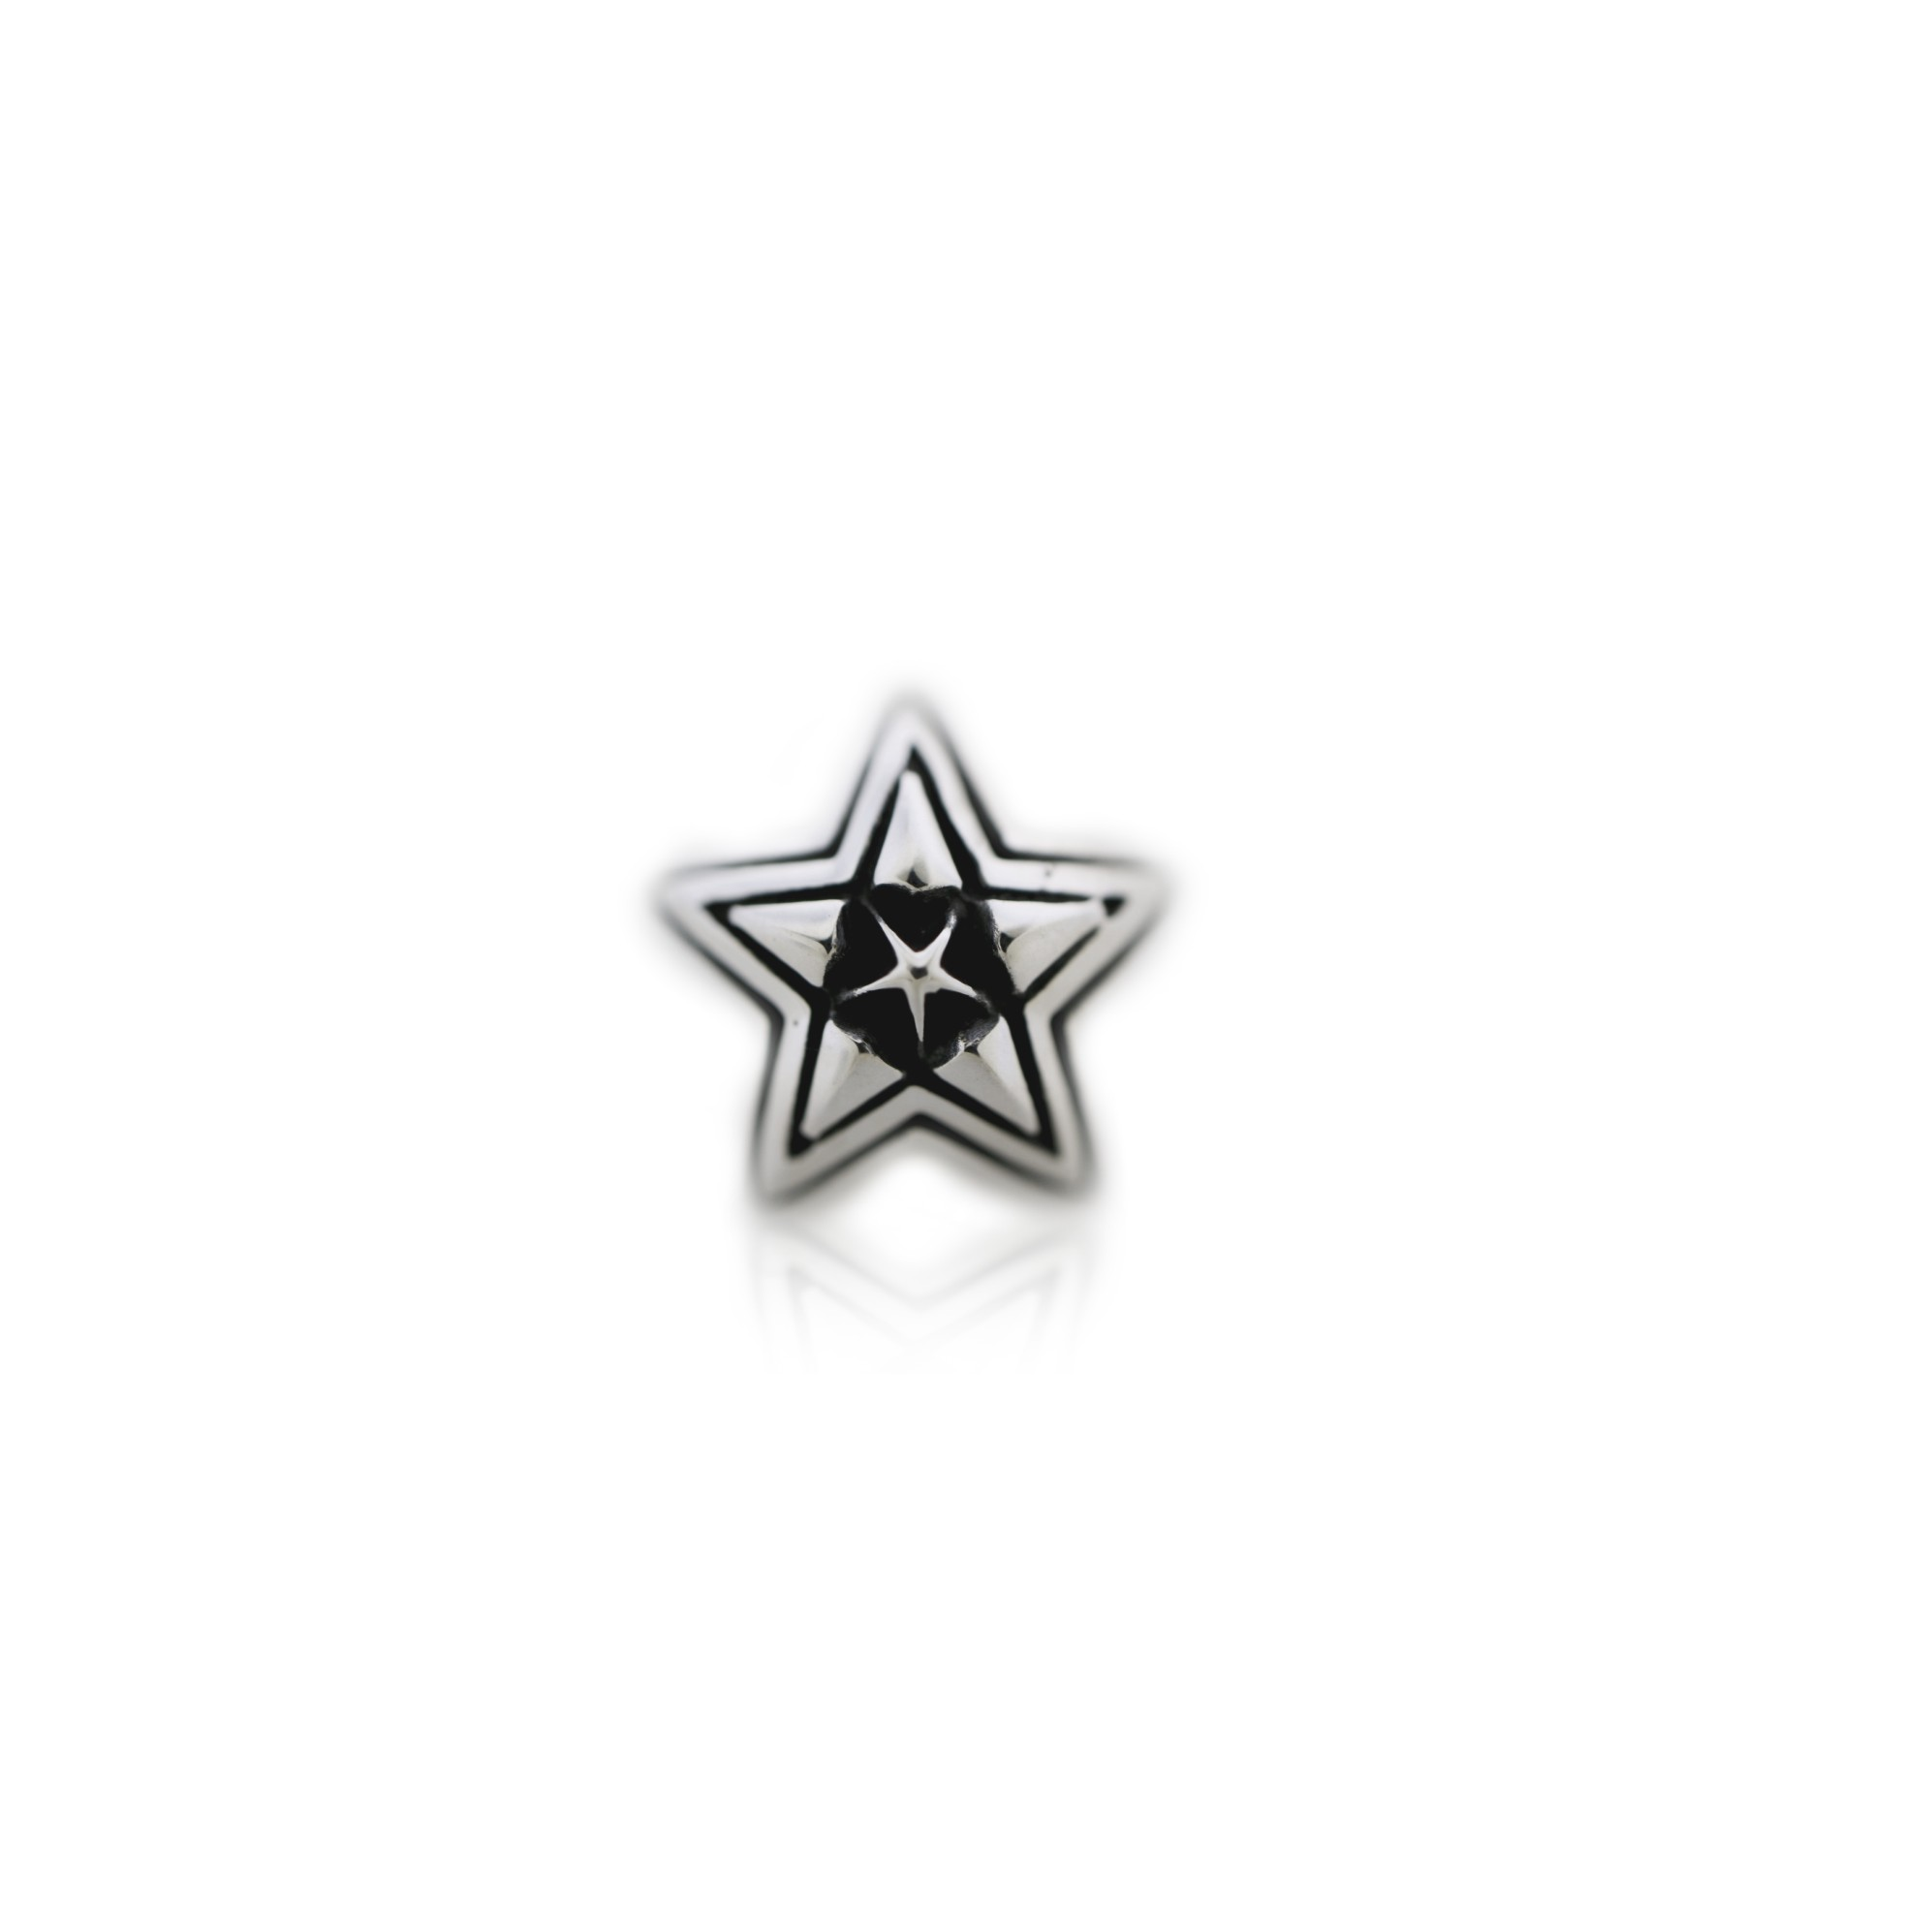 TINY DOUBLE FACE STAR IN STAR STUD PENDANT + SMALL STAINLESS BEAD CHAIN  [USD $410]